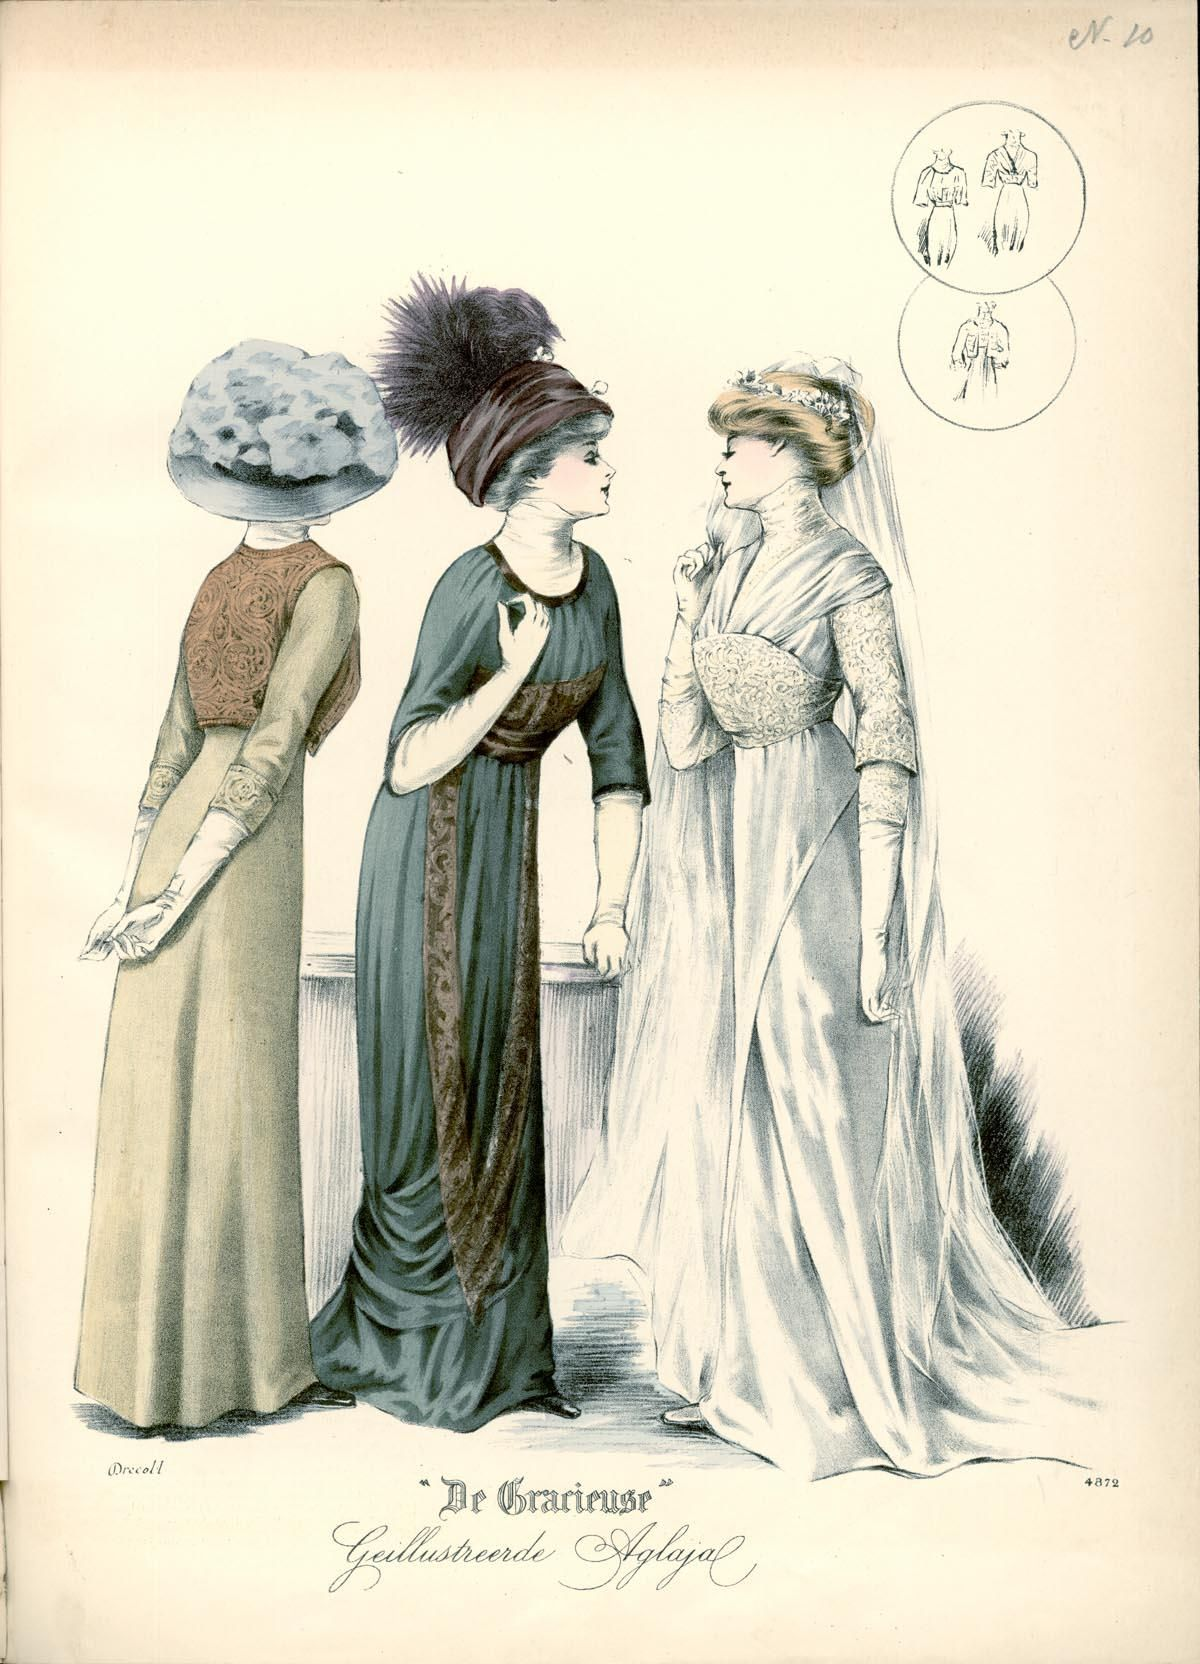 De Gracieuse (May 1910) gowns for bridal party, I would love to recreate the gown on the left - short and simple A-line dress with embroidered bolero